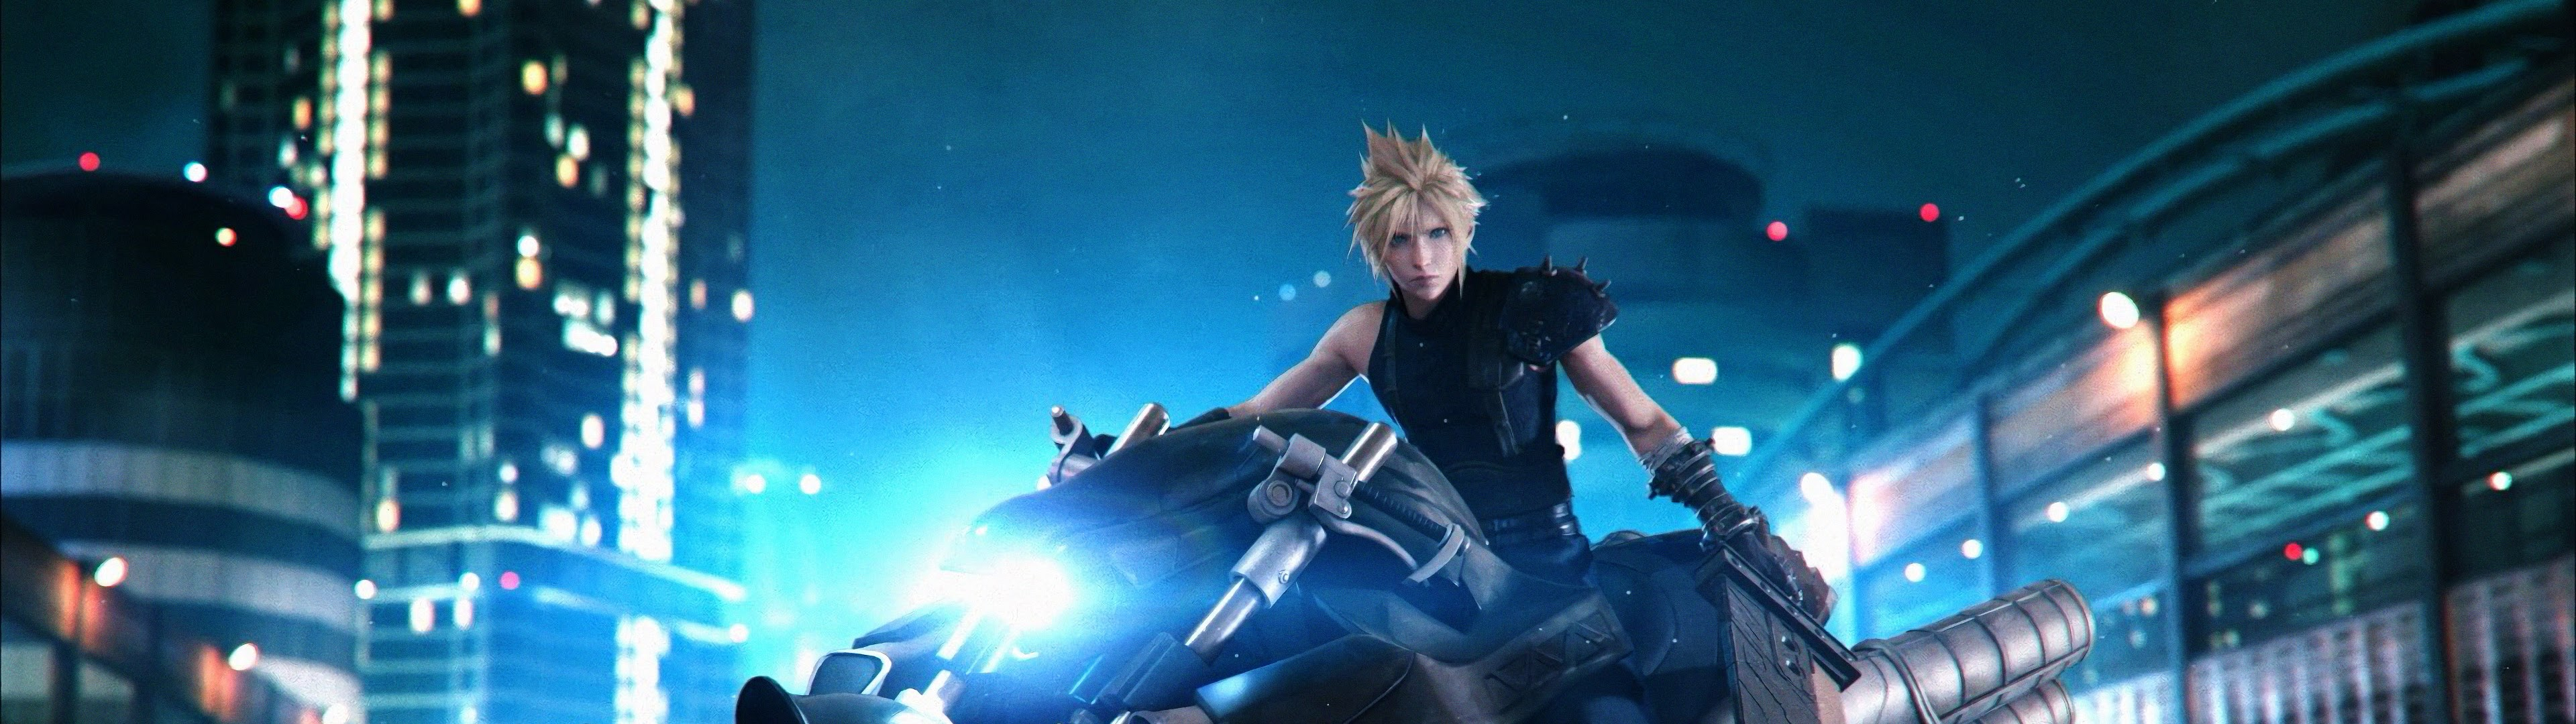 Final Fantasy Dual Monitor Wallpaper Posted By Michelle Anderson